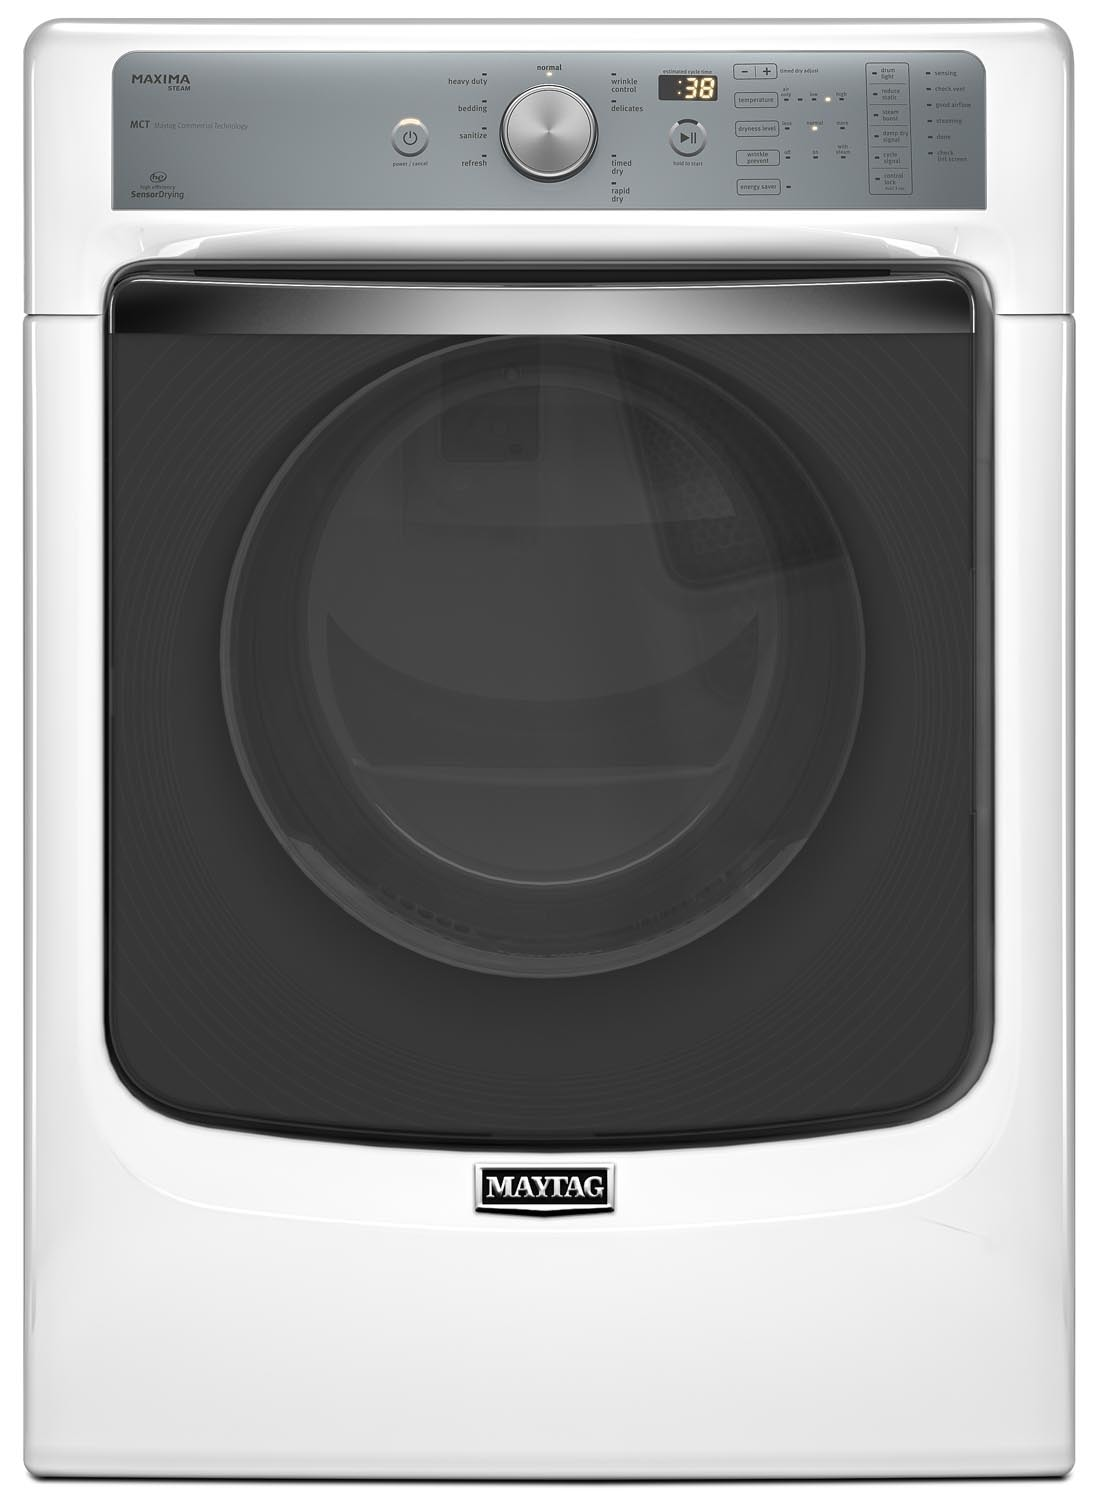 Washers and Dryers - Maytag Maxima® Dryer w/ SoundGuard® Dryer Drum (7.3 Cu. Ft.) YMED8100DW